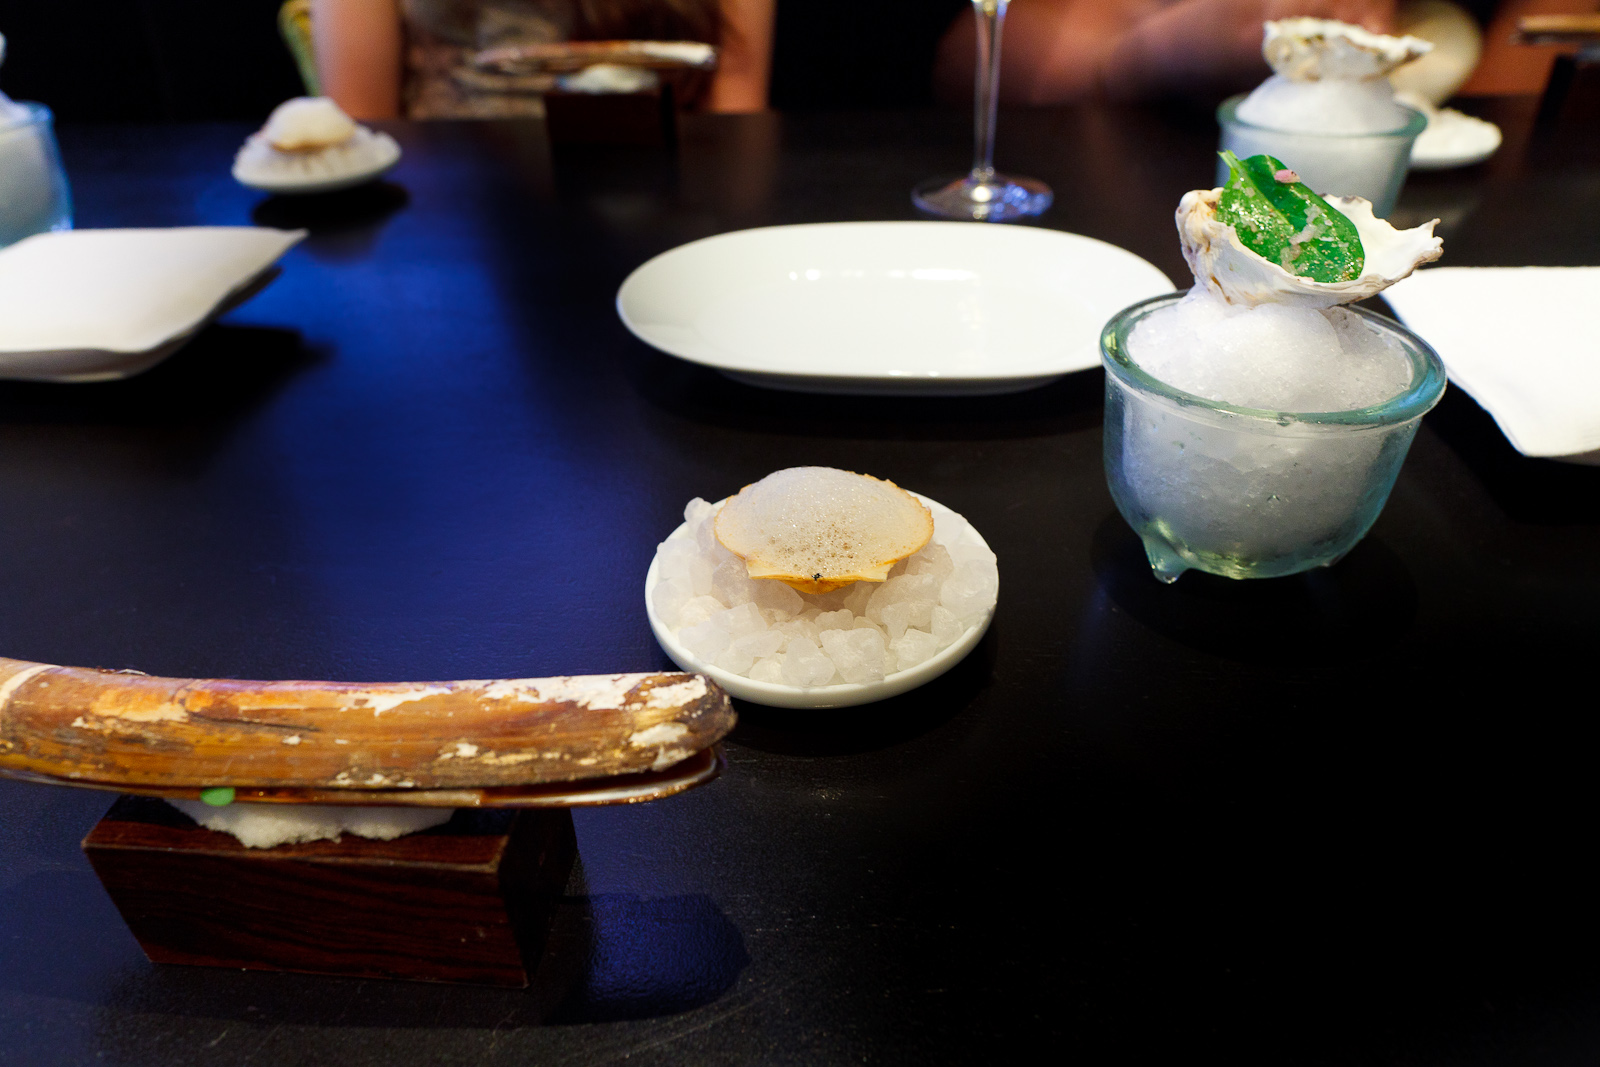 3rd/4th/5th Courses: Oyster leaf mignonette / scallop, hitachino, weizen, old bay / razor clam, carrot, soy, daikon